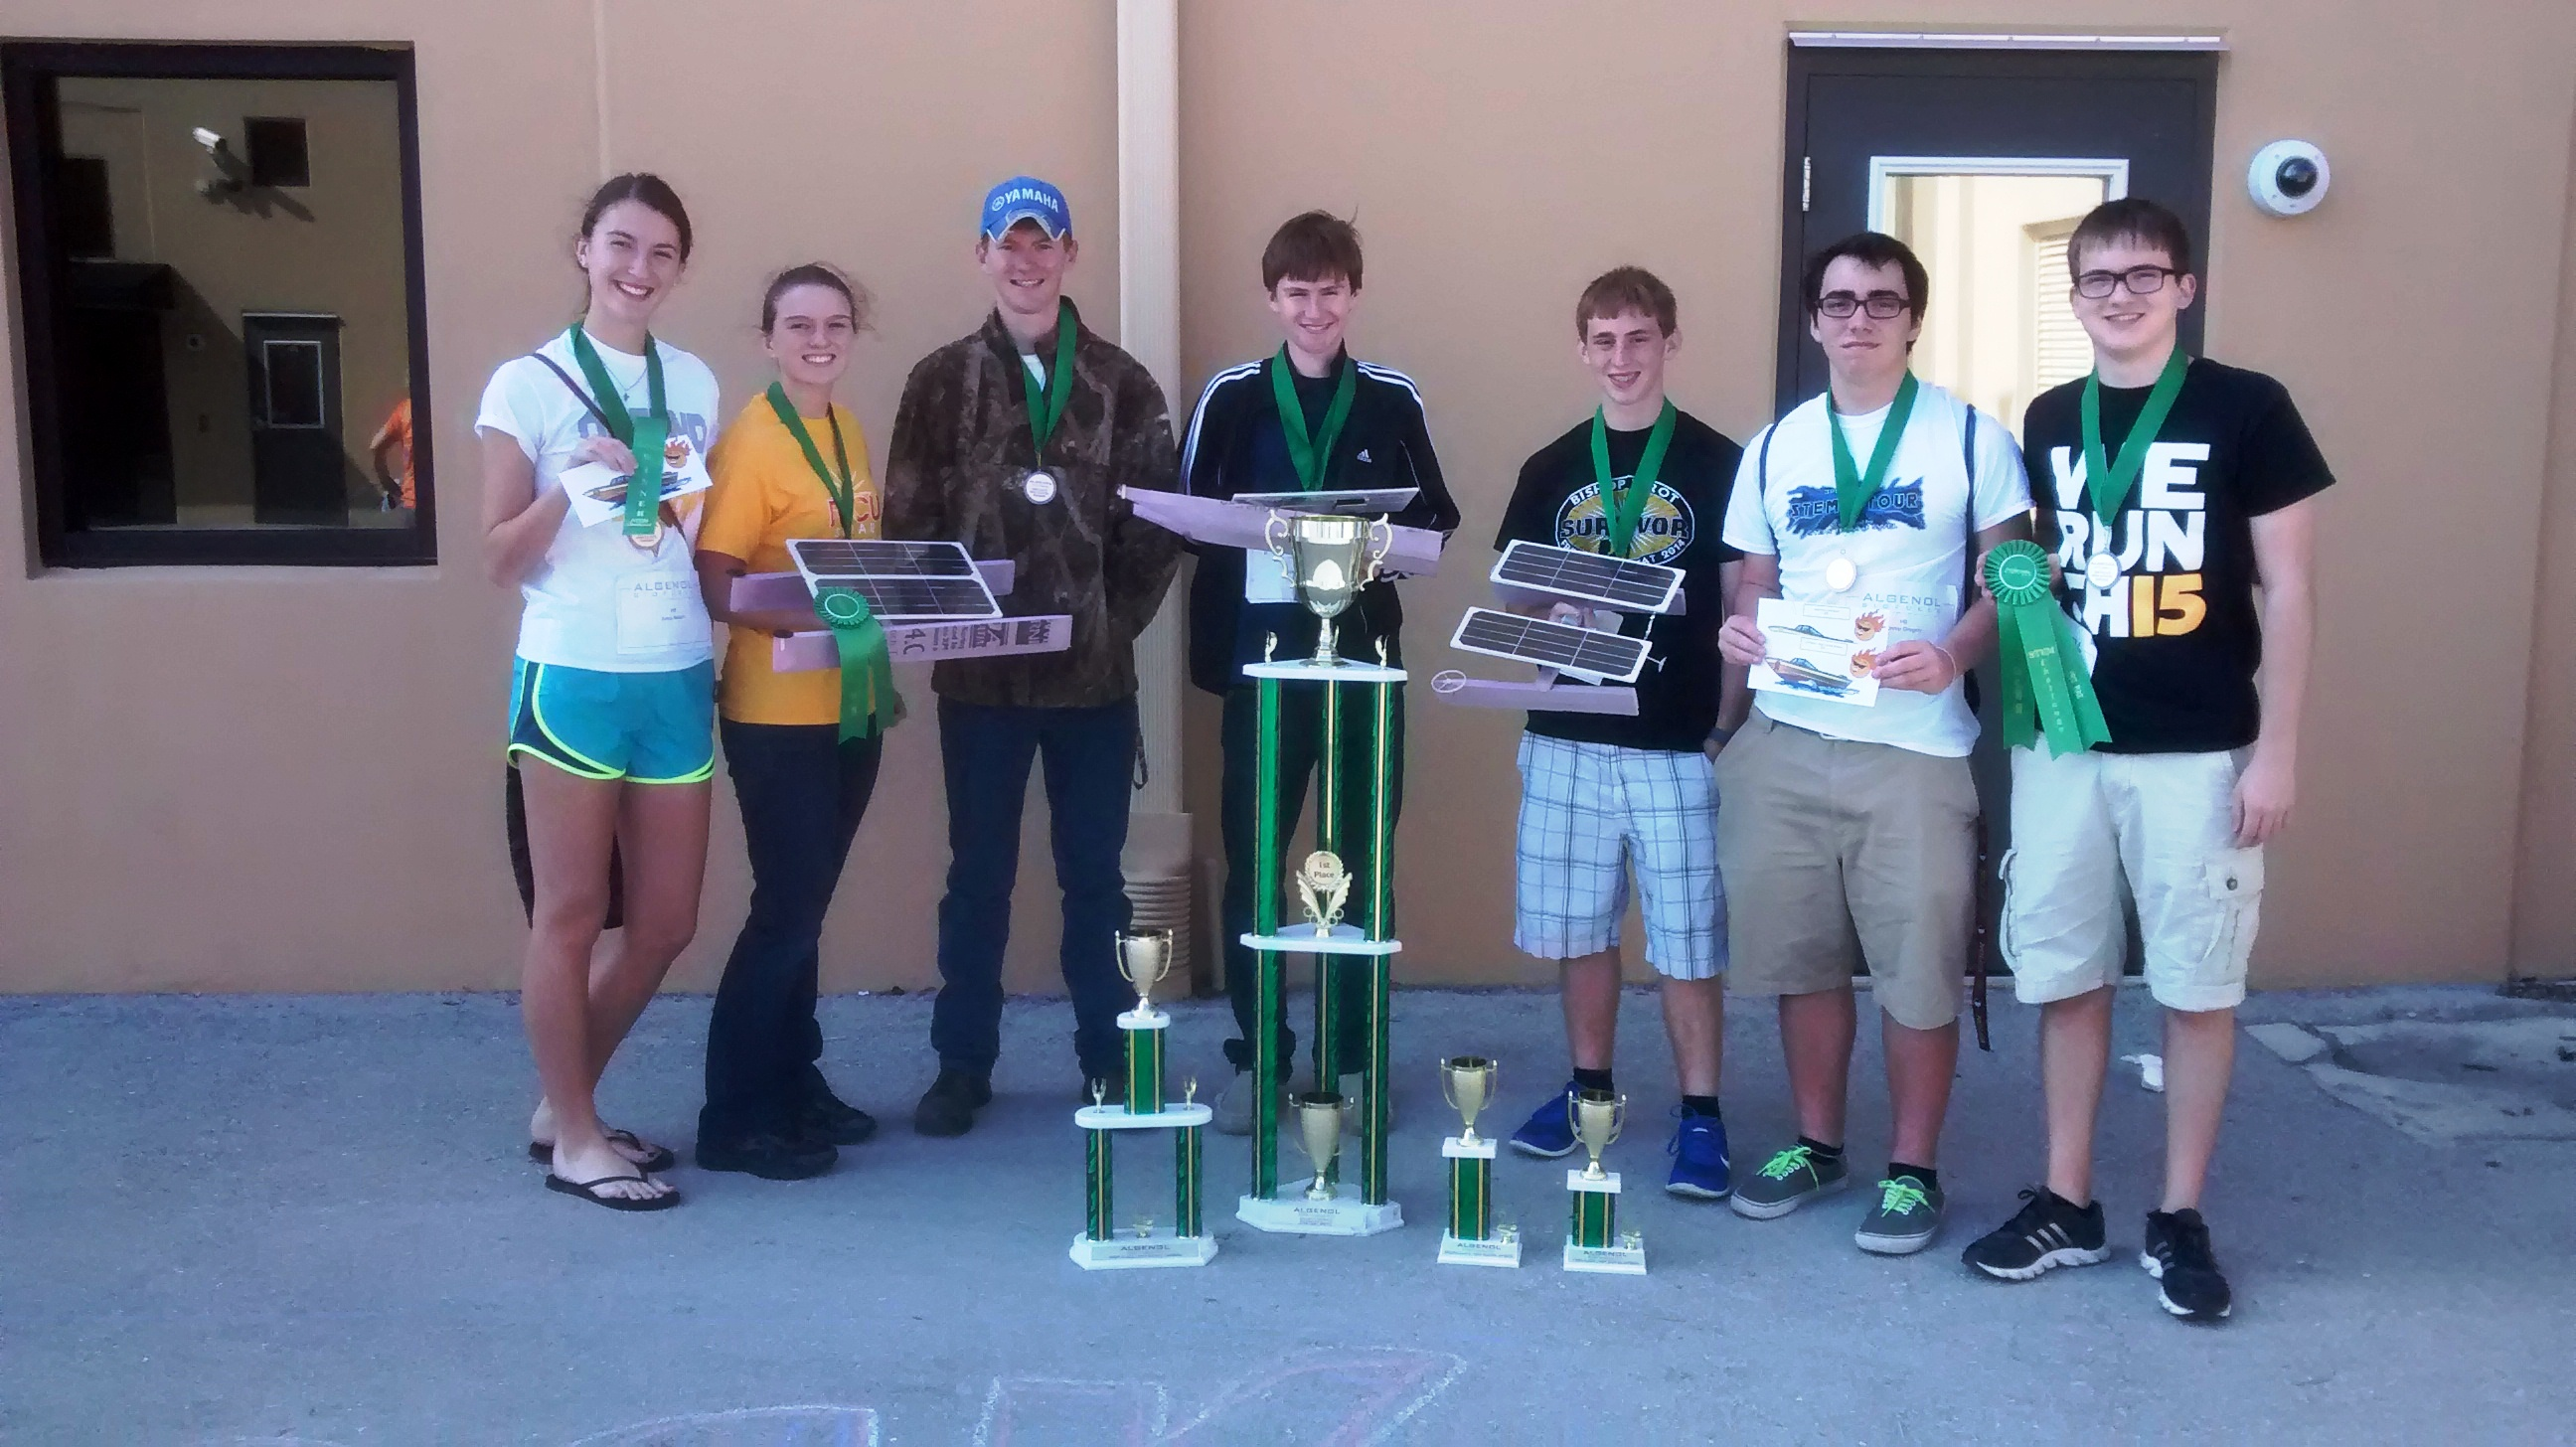 Bishop Verot's STEM team sweeps the Algenol Solar Boat Competition